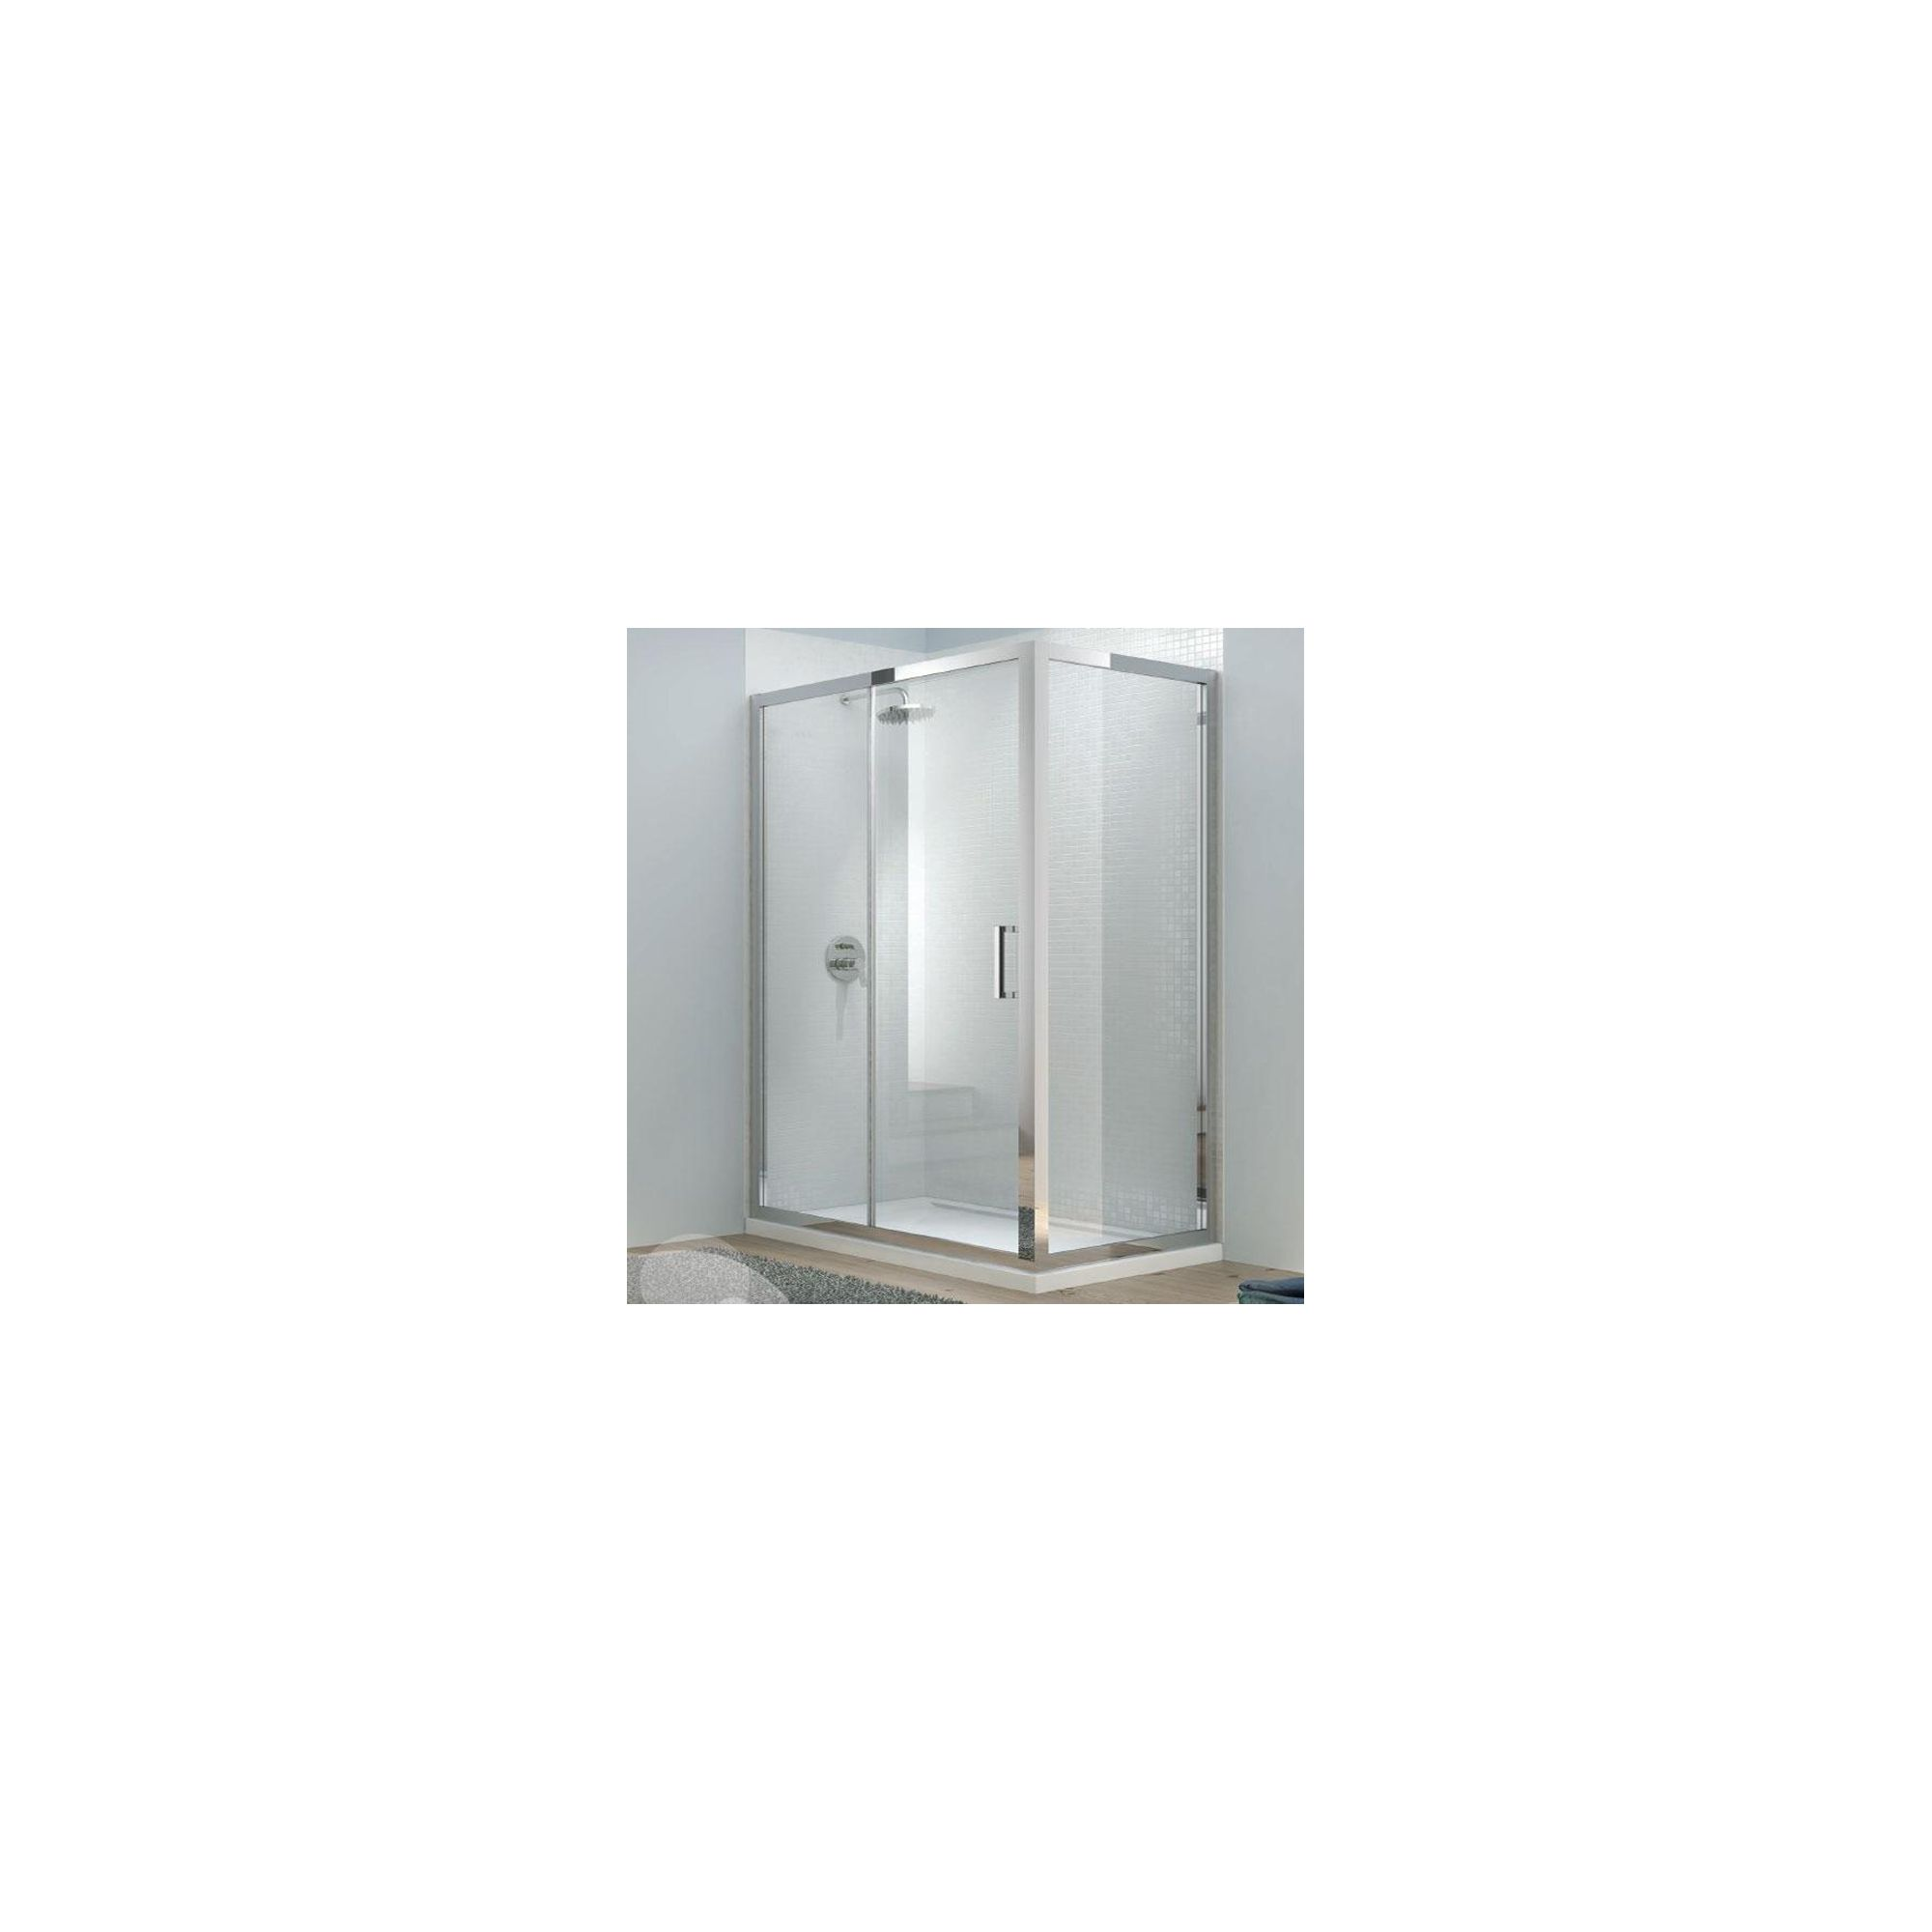 Merlyn Vivid Eight Sliding Shower Door, 1700mm Wide, 8mm Glass at Tesco Direct